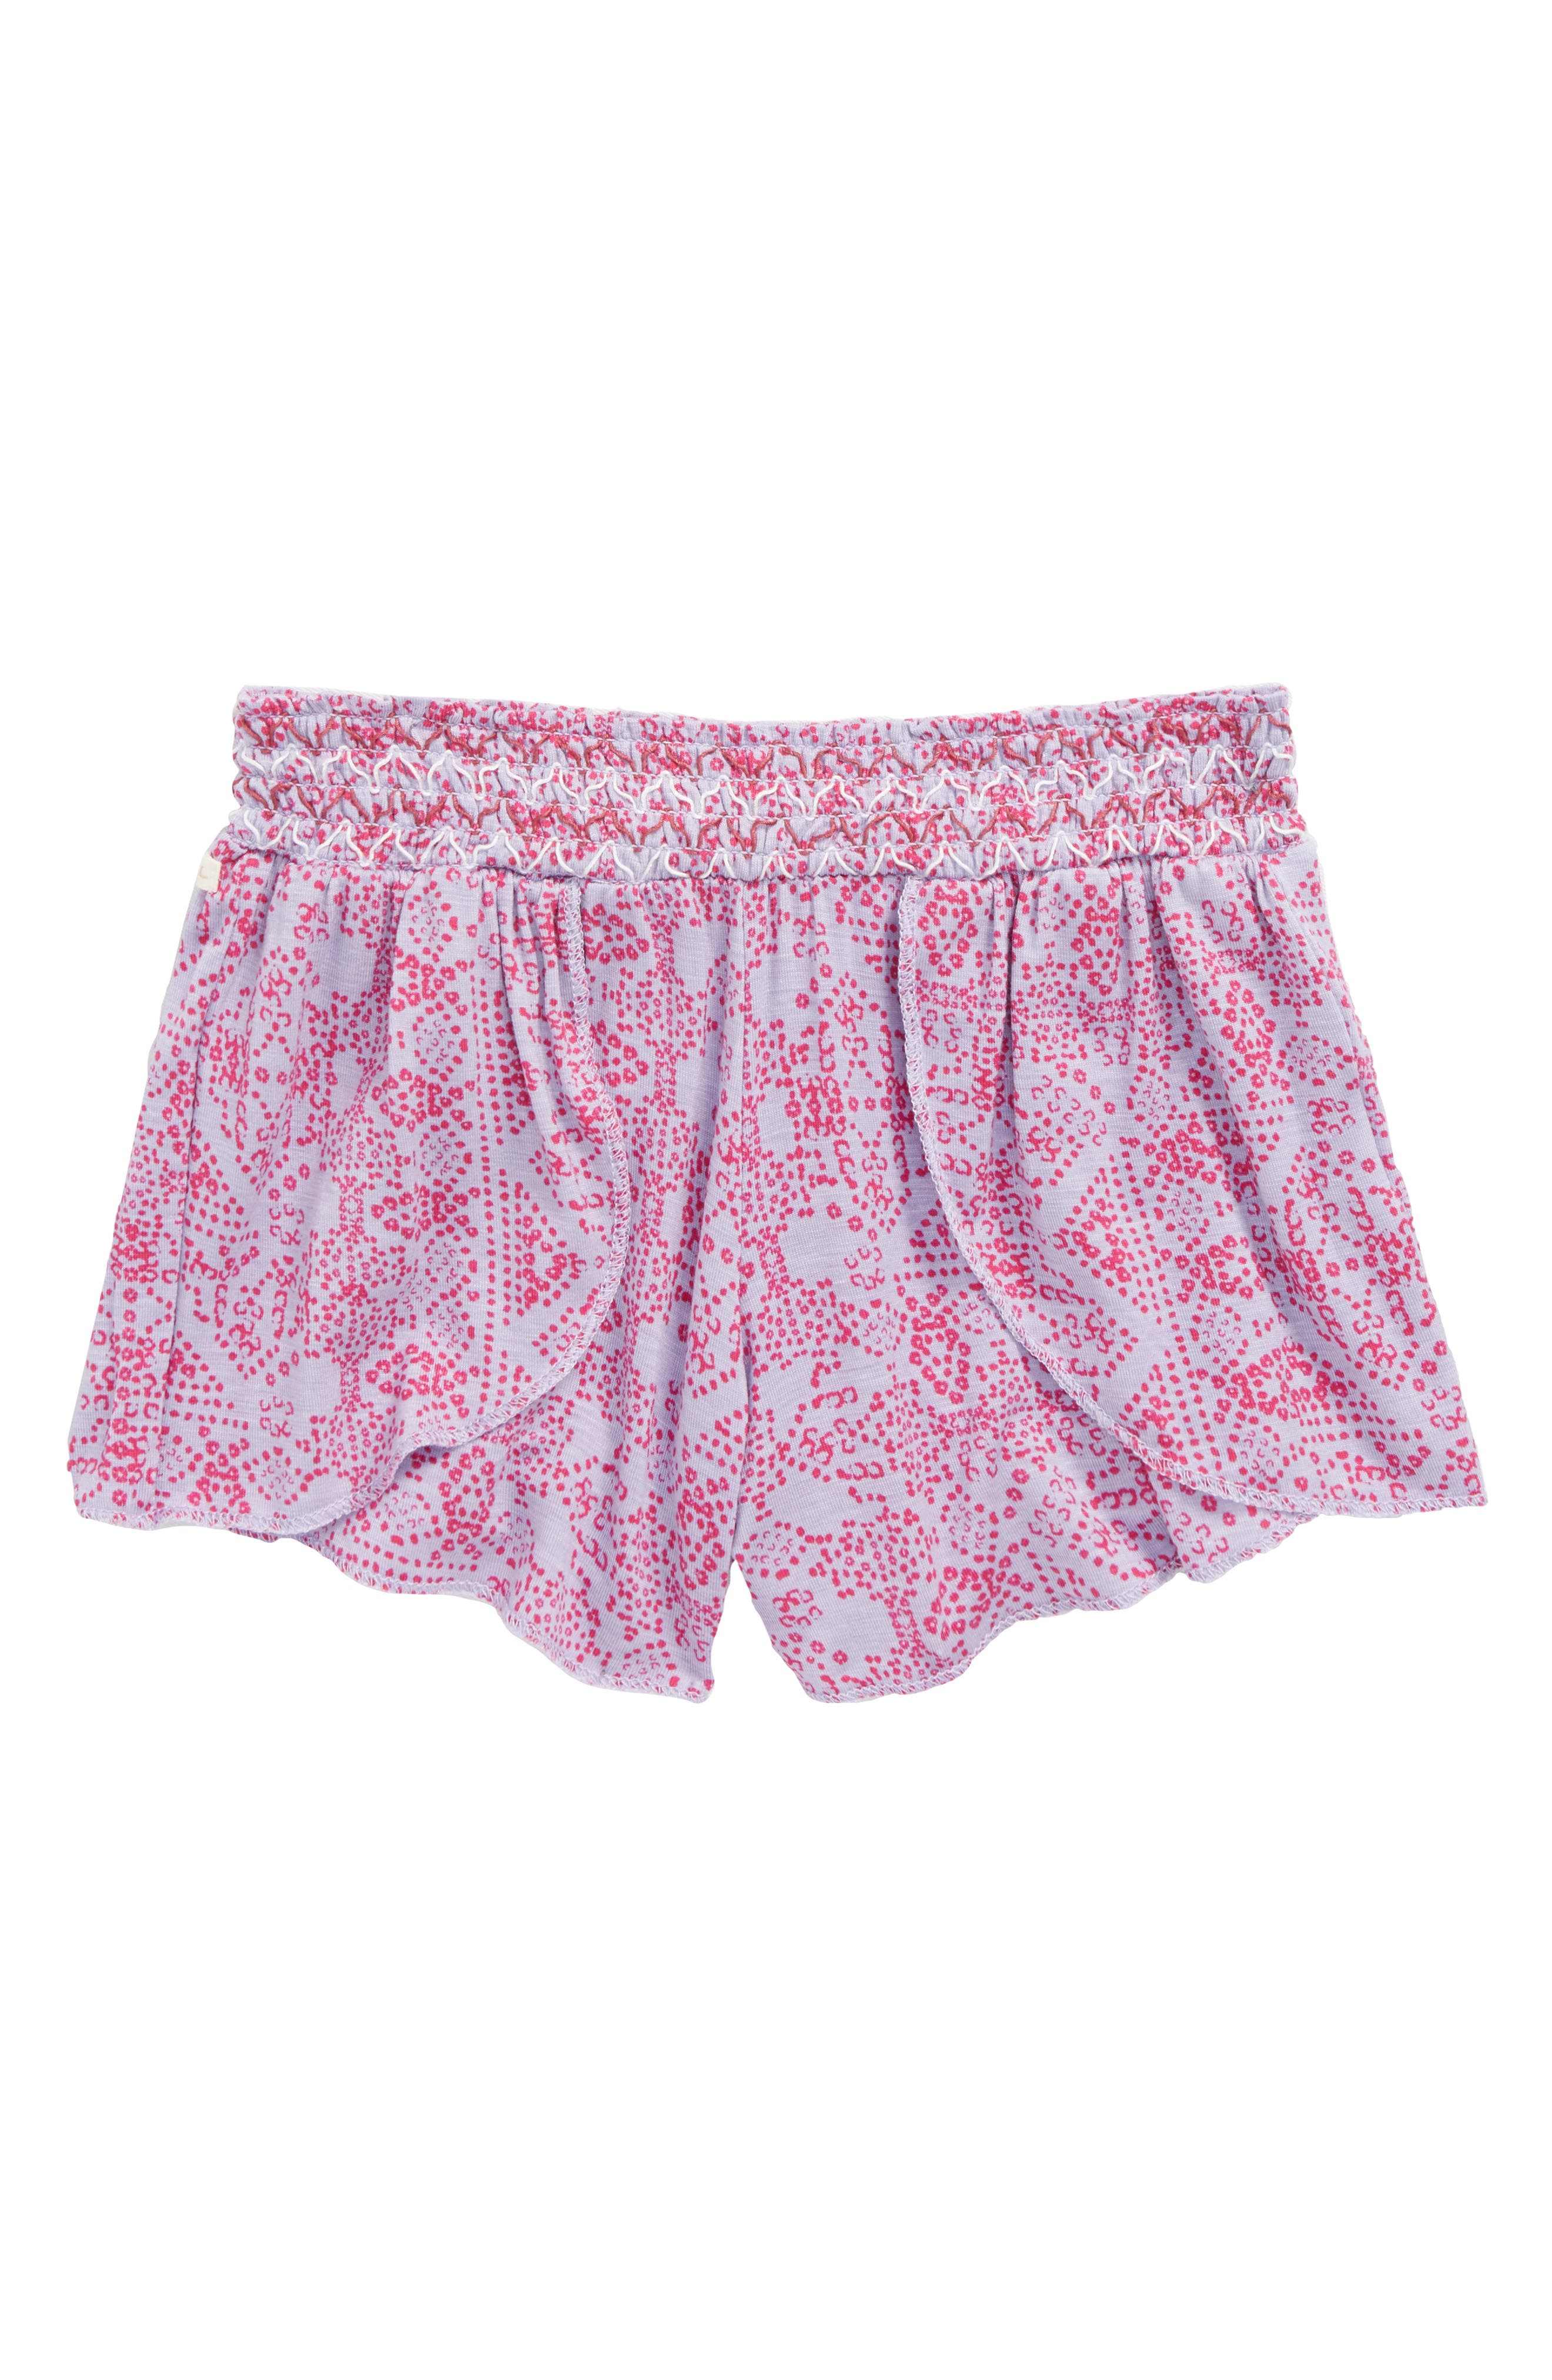 Dulce Smocked Shorts,                         Main,                         color, 530